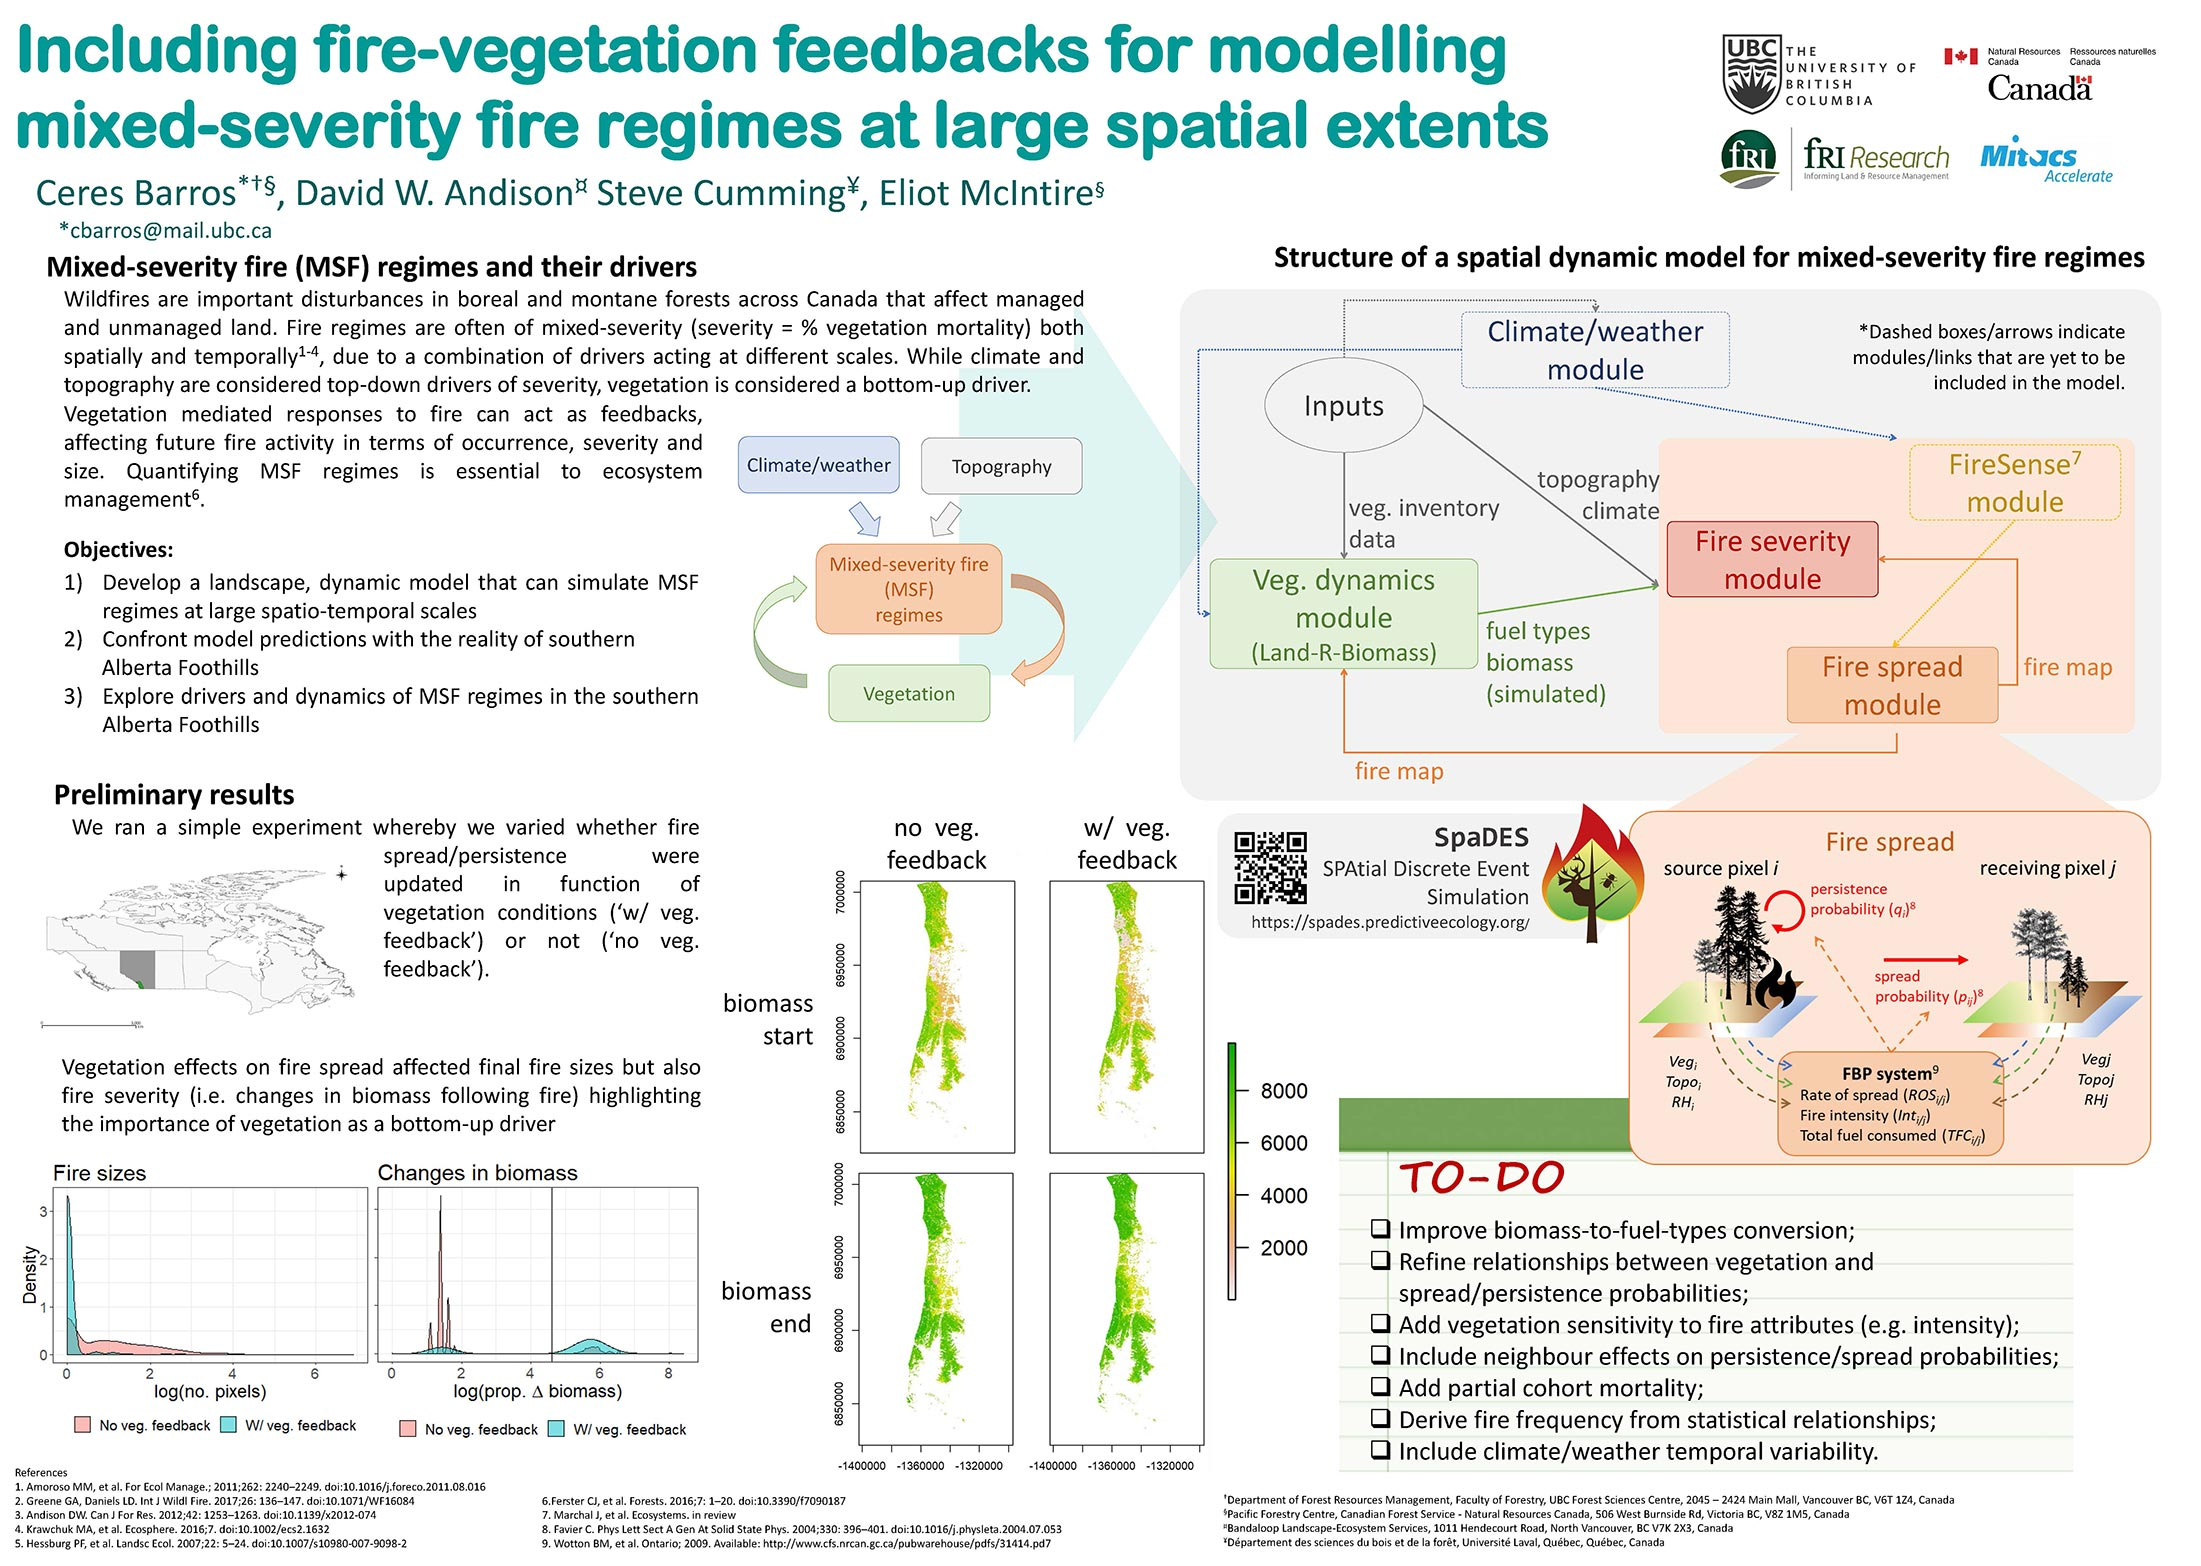 Including fire-vegetation feedbacks for modelling mixed-severity fire regimes at large spatial extents. Poster by Ceres Barros, David W. Andison, Steve Cumming, and Eliot McIntire. Presented at the Ecological Society of America Annual Meeting on Aug. 8, 2018.